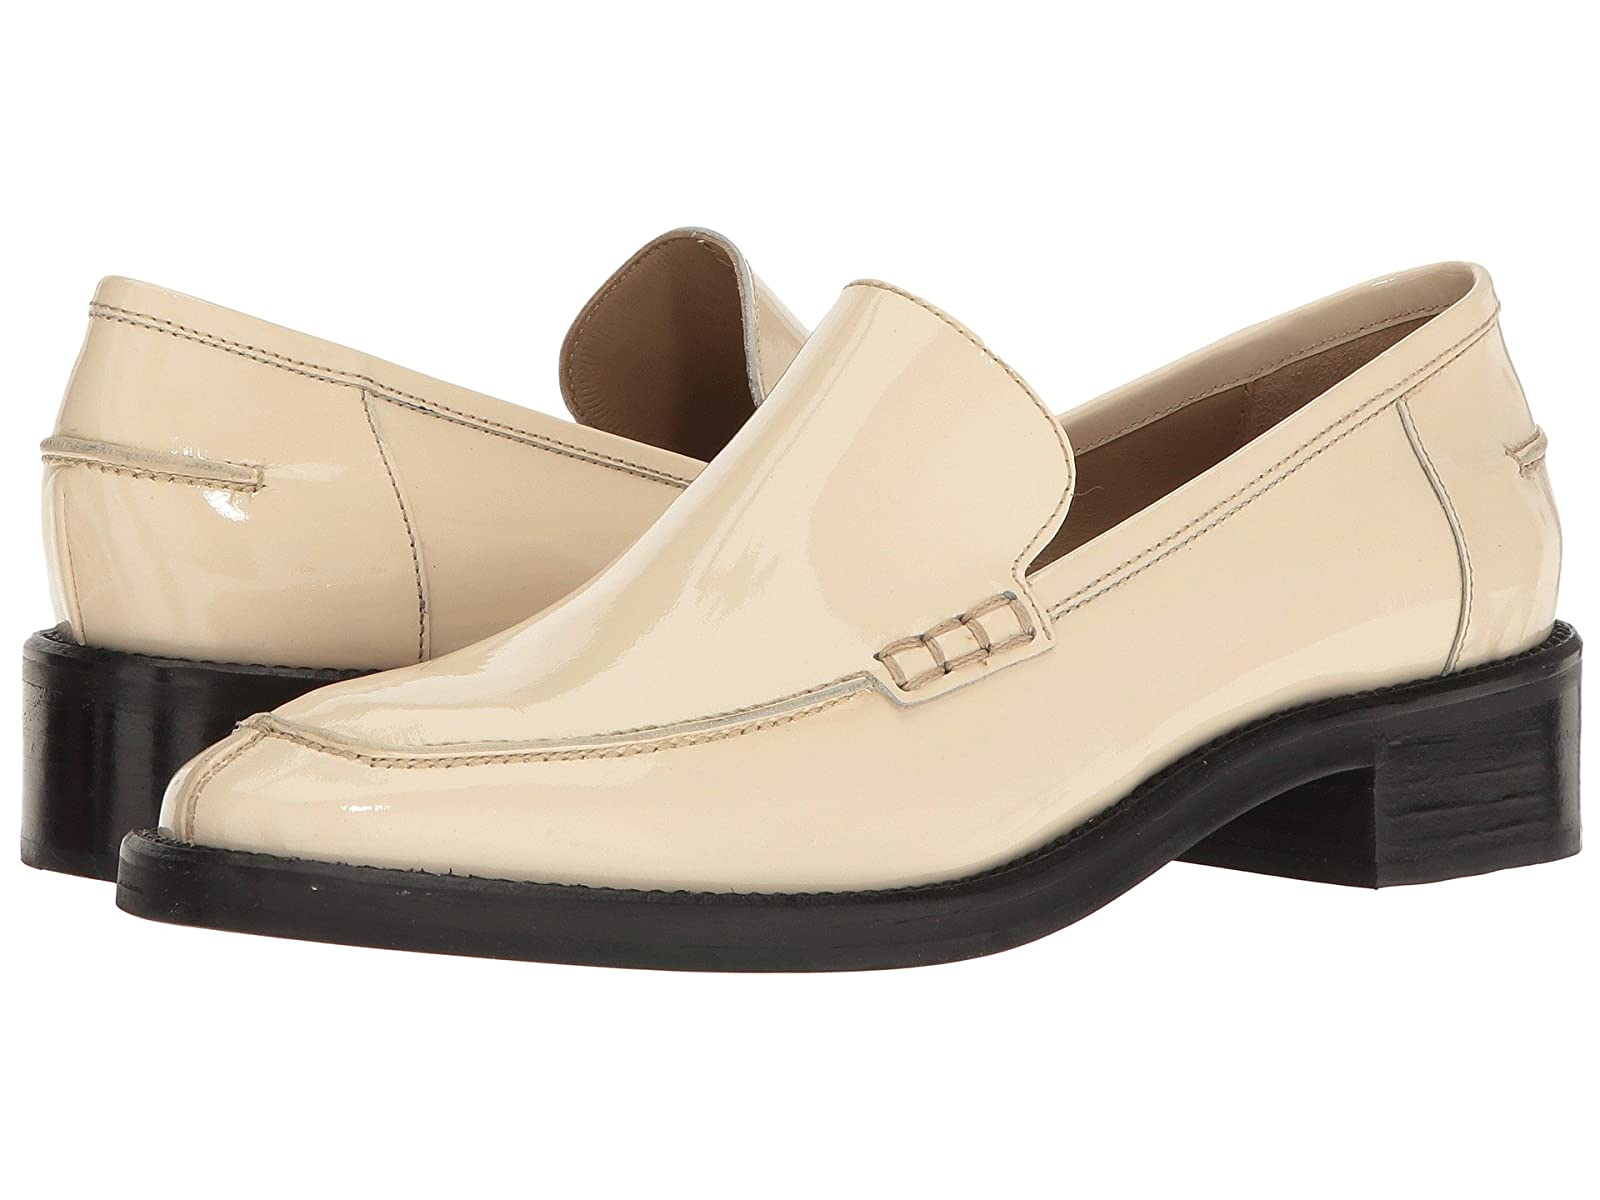 Rachel Comey BransonCheap and distinctive eye-catching shoes